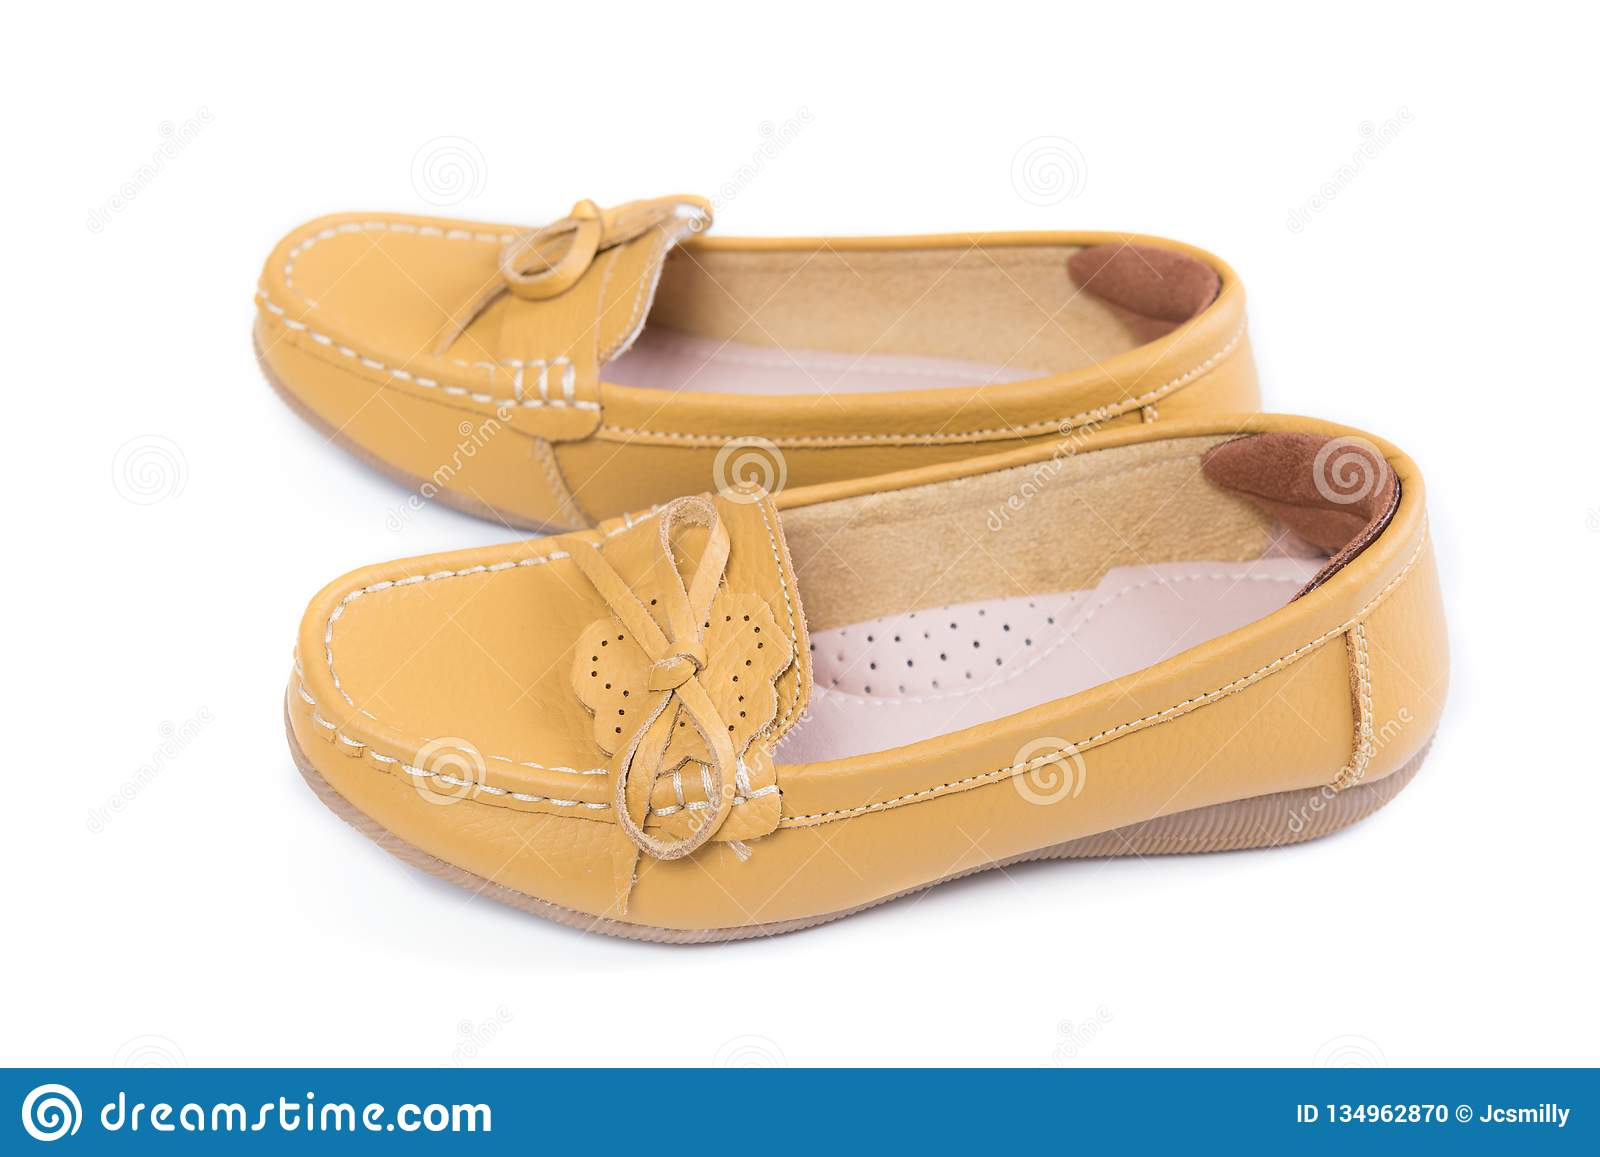 9d40b246e Pair of yellow casual leather flat shoes isolated on white background